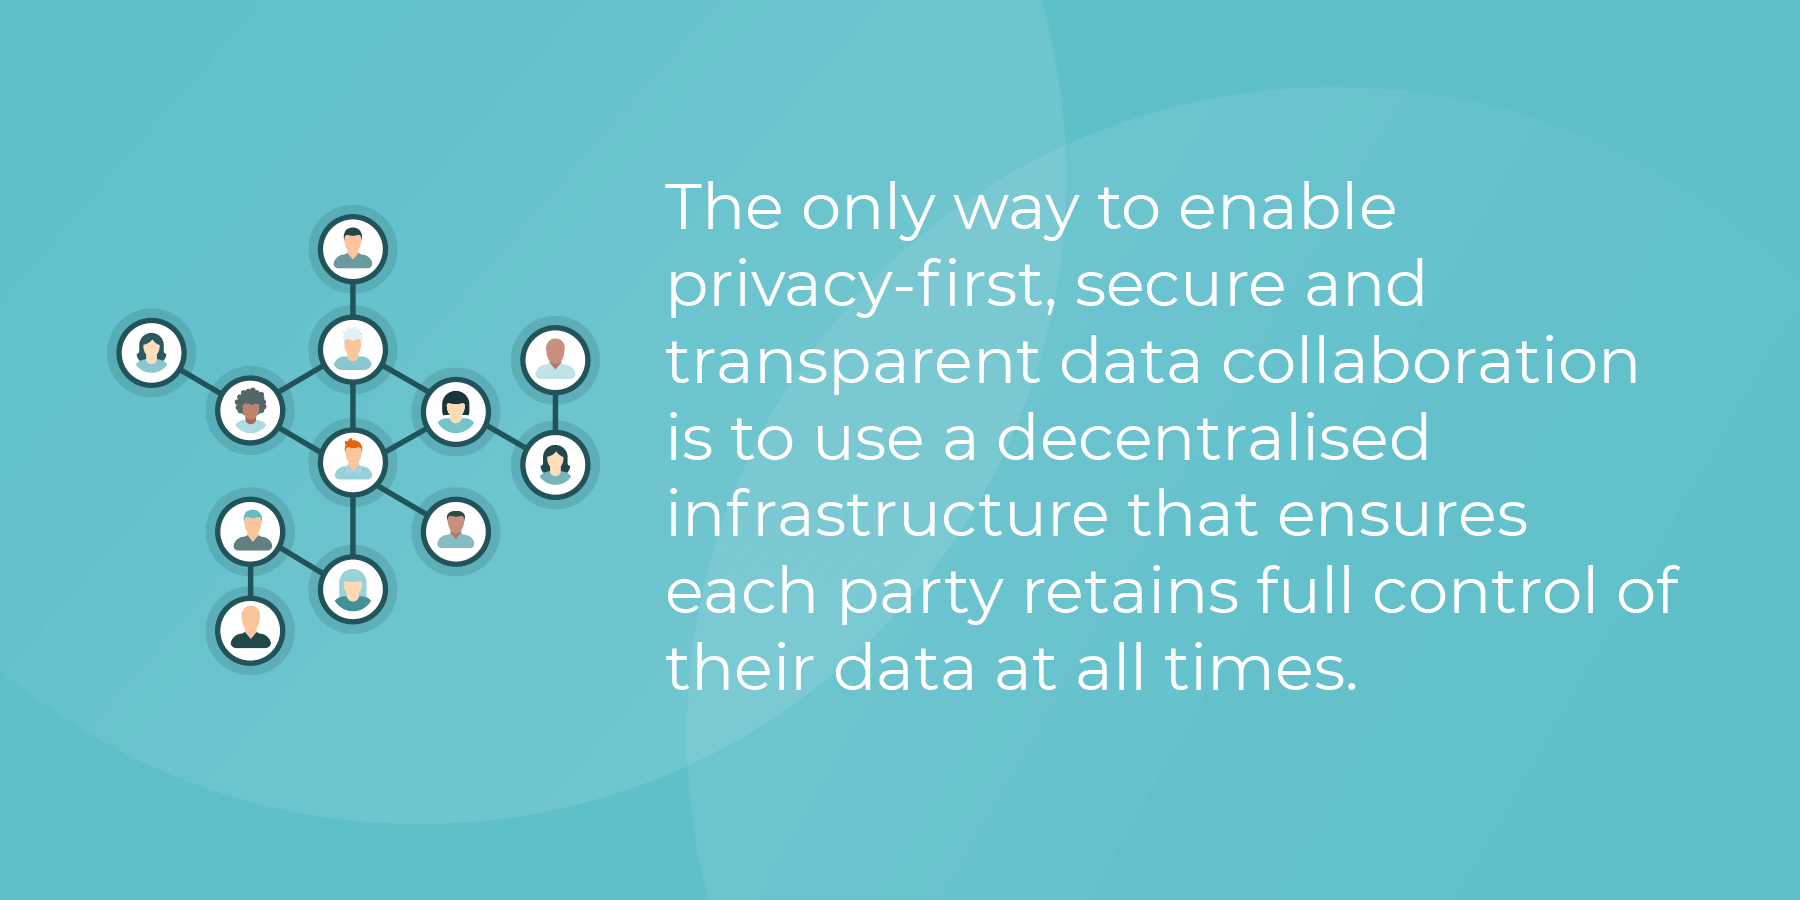 Privacy-first data collaboration